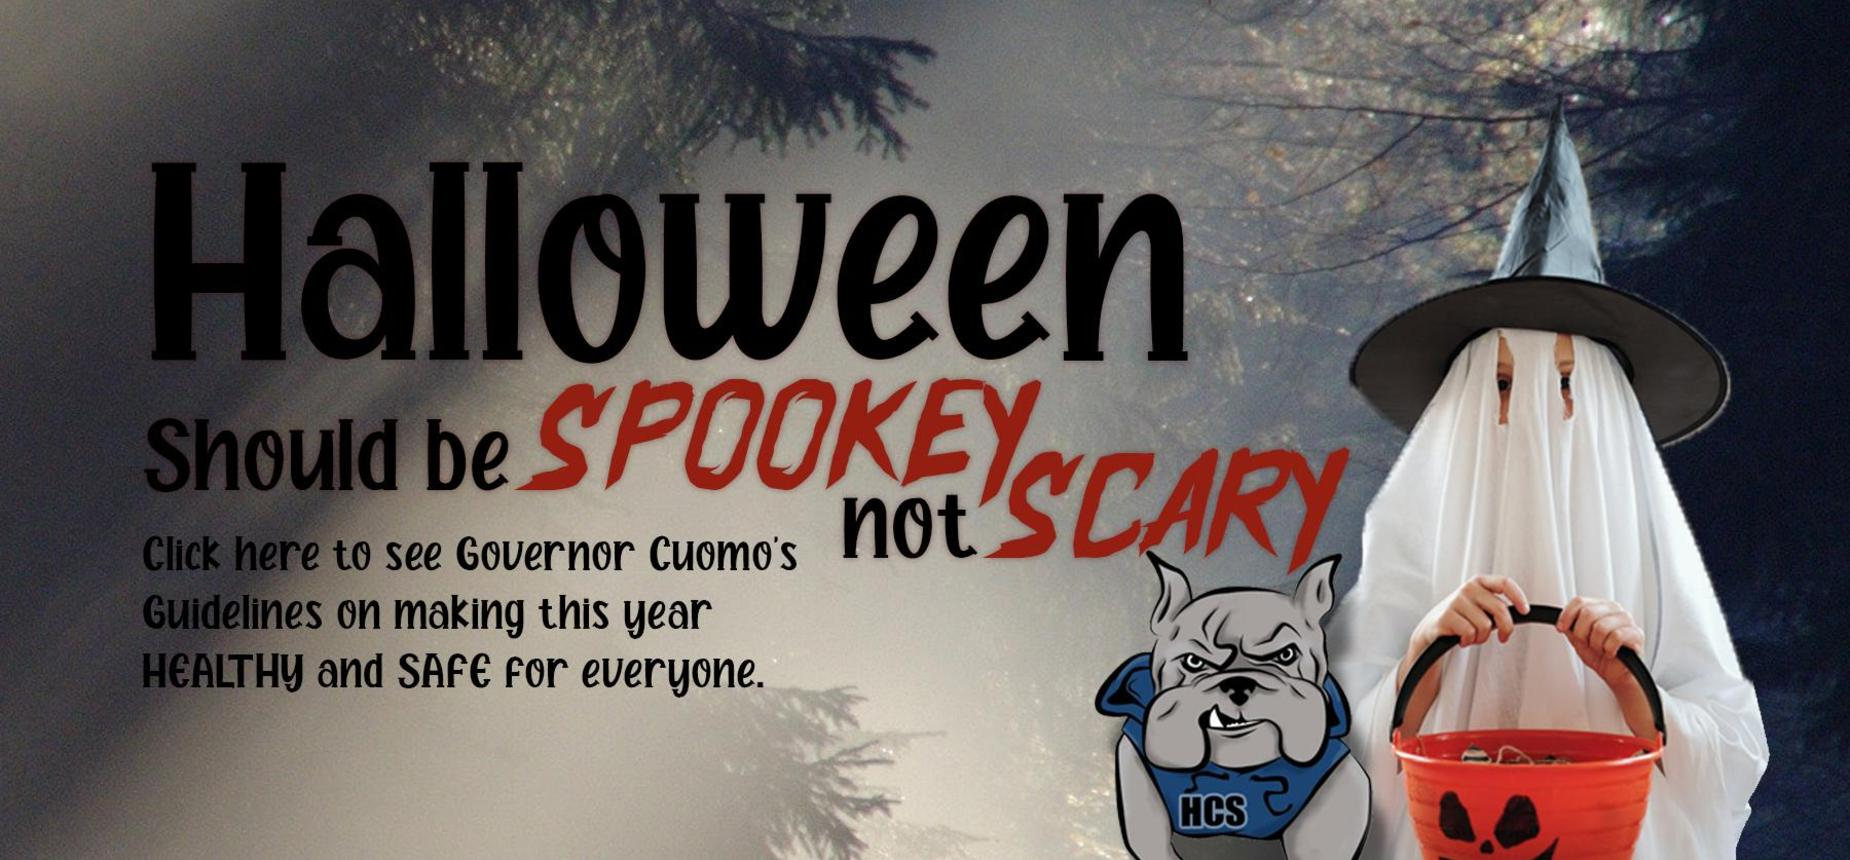 Governor Cuomo's Guidelines for a HEALTHY and SAFE Halloween.